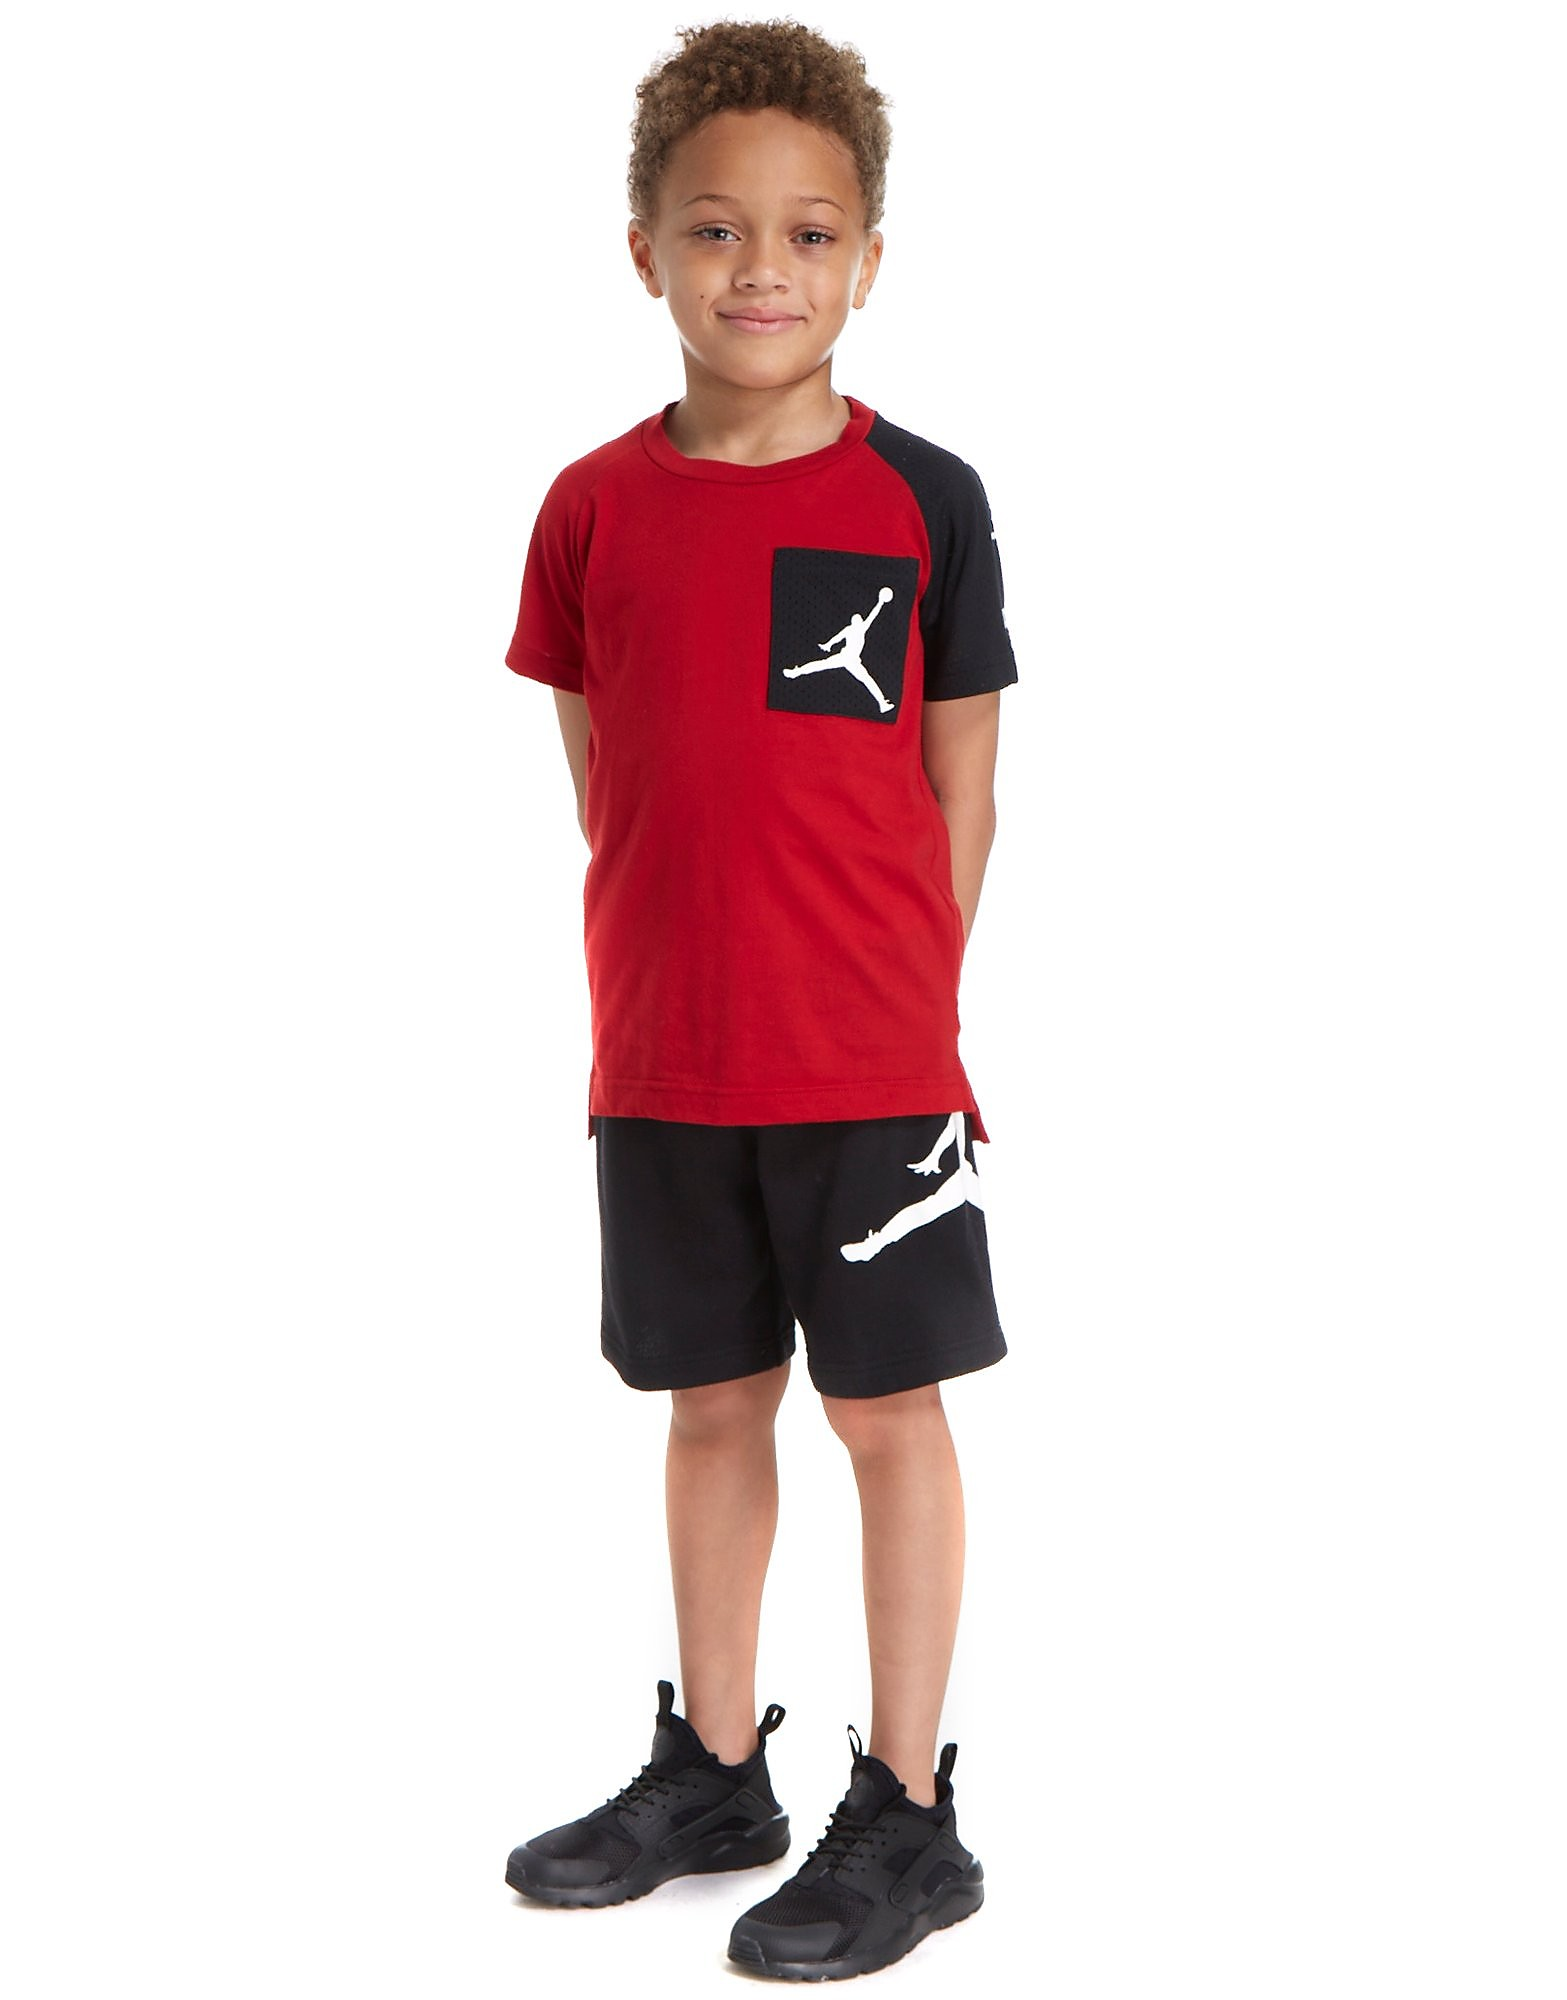 Jordan Air T-Shirt and Short Set Children